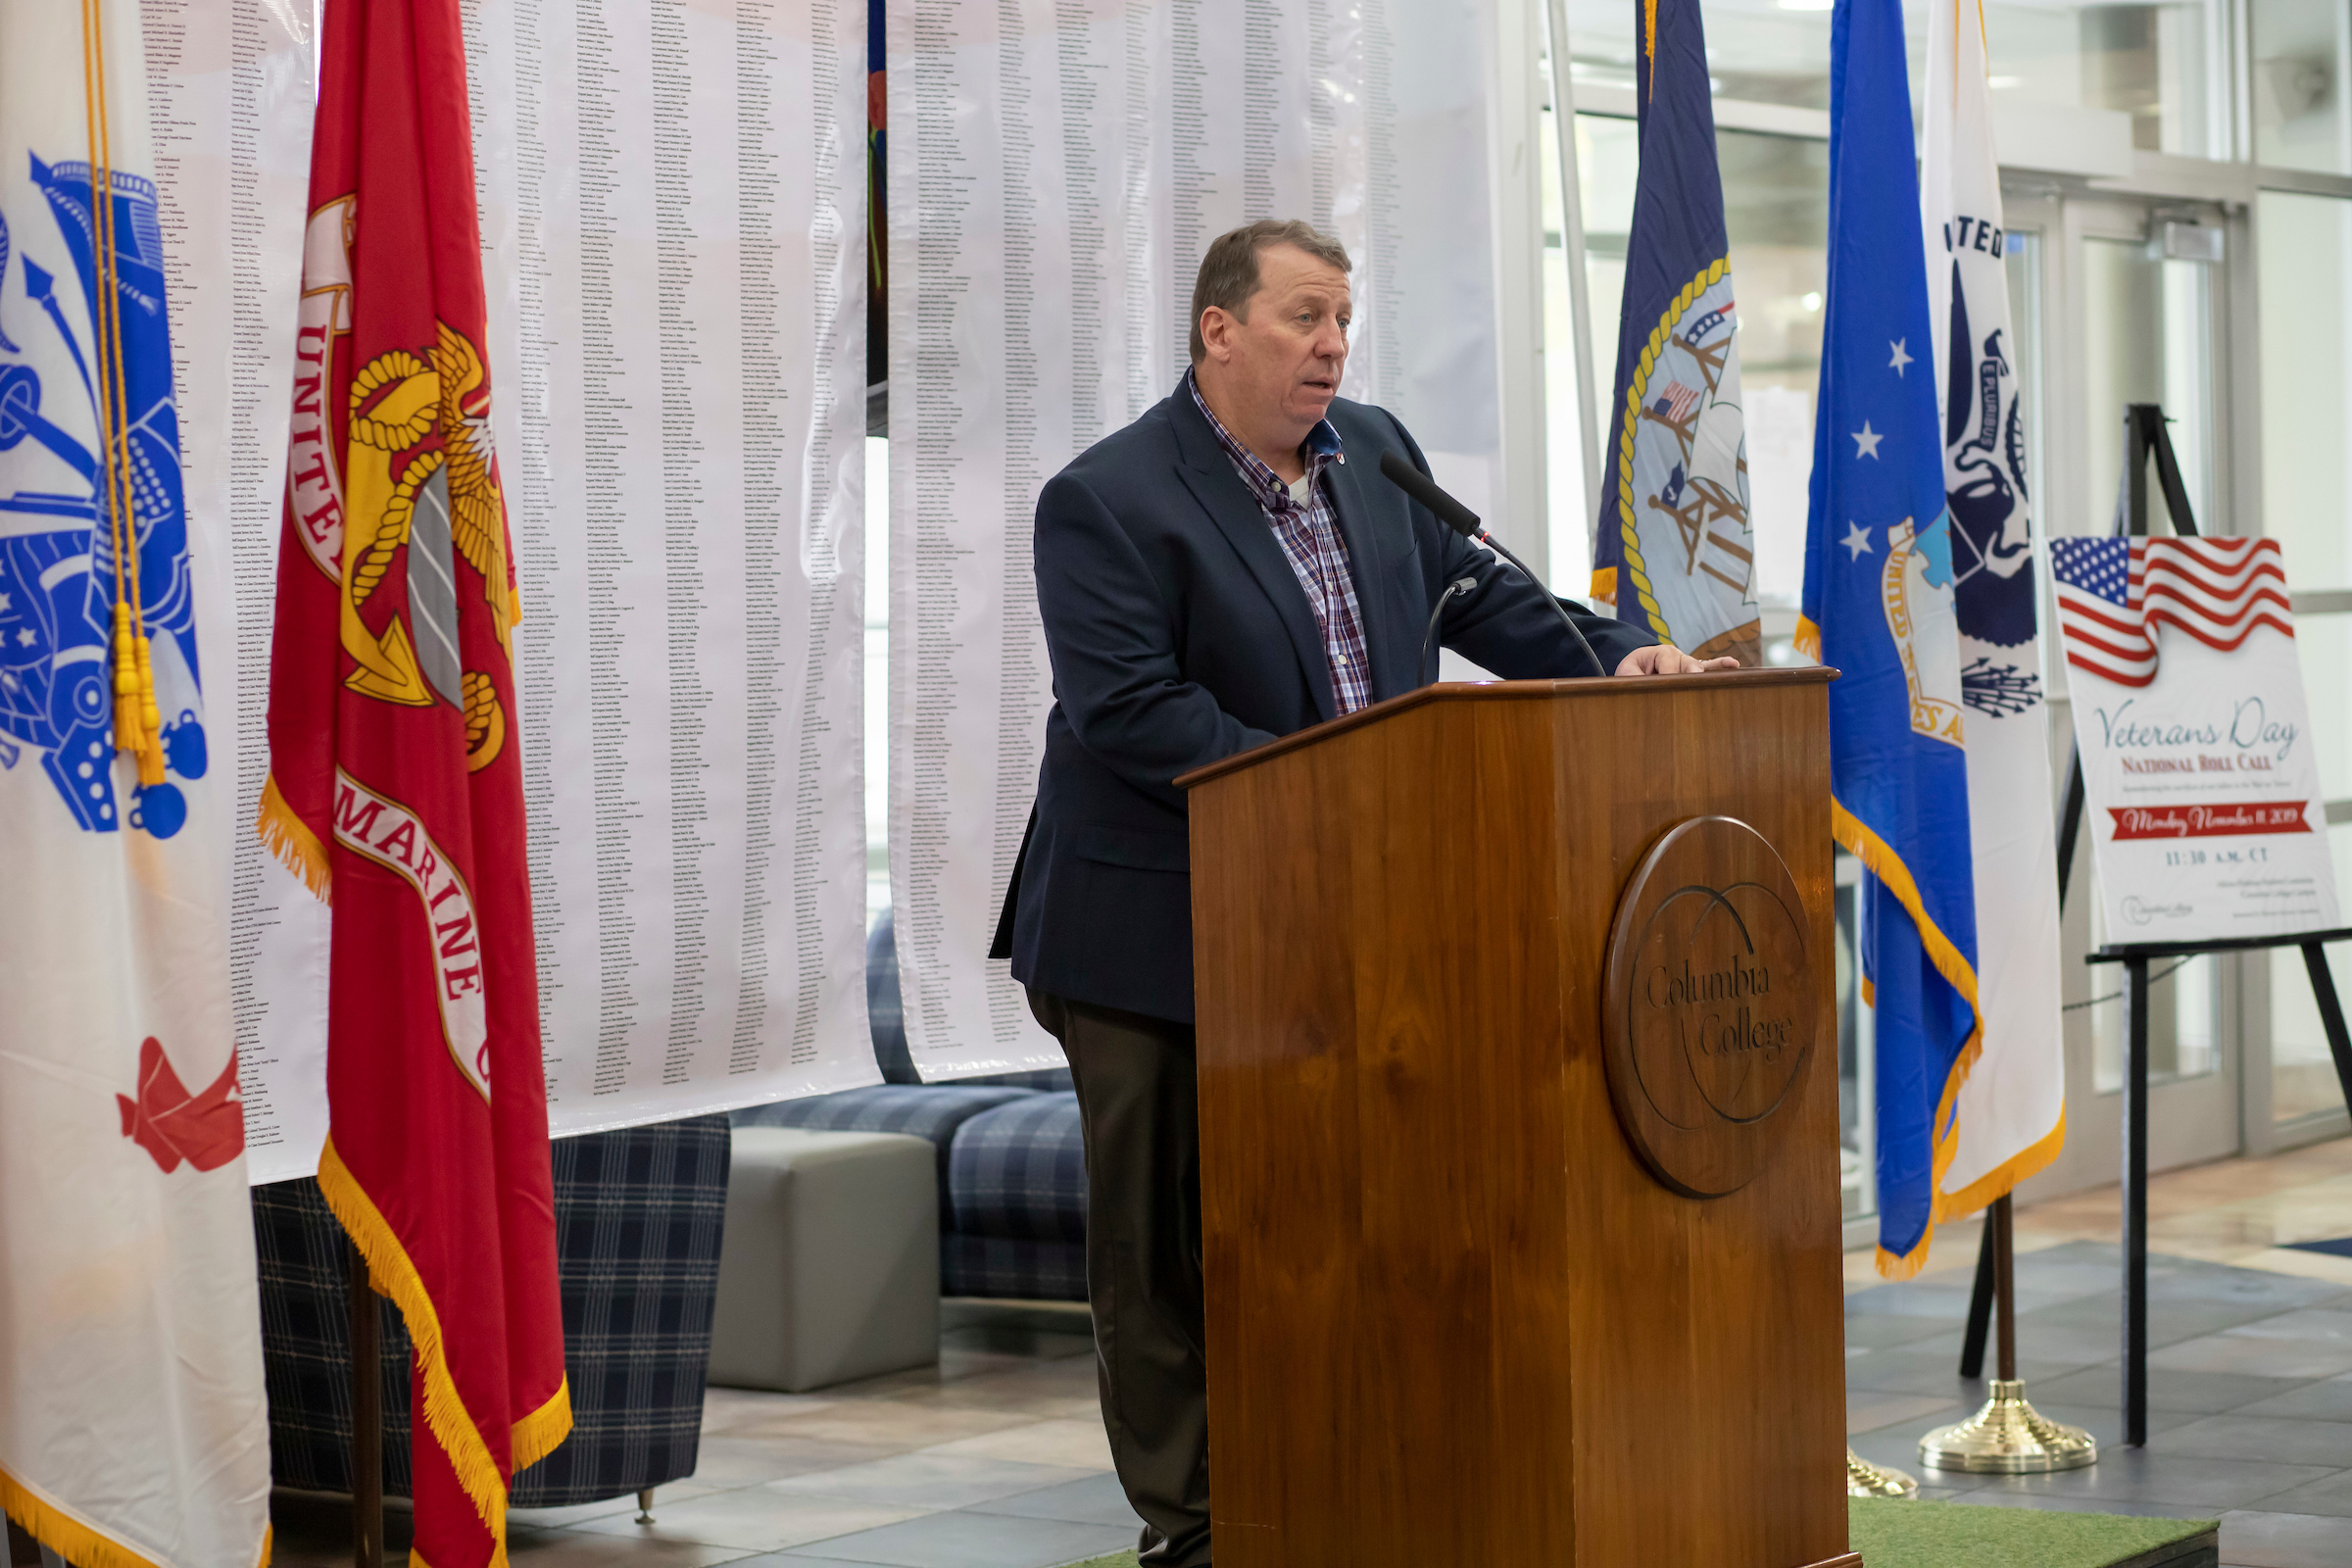 Senior Director of Military & Veterans Services Keith Glindemann presides over the college's National Roll Call.